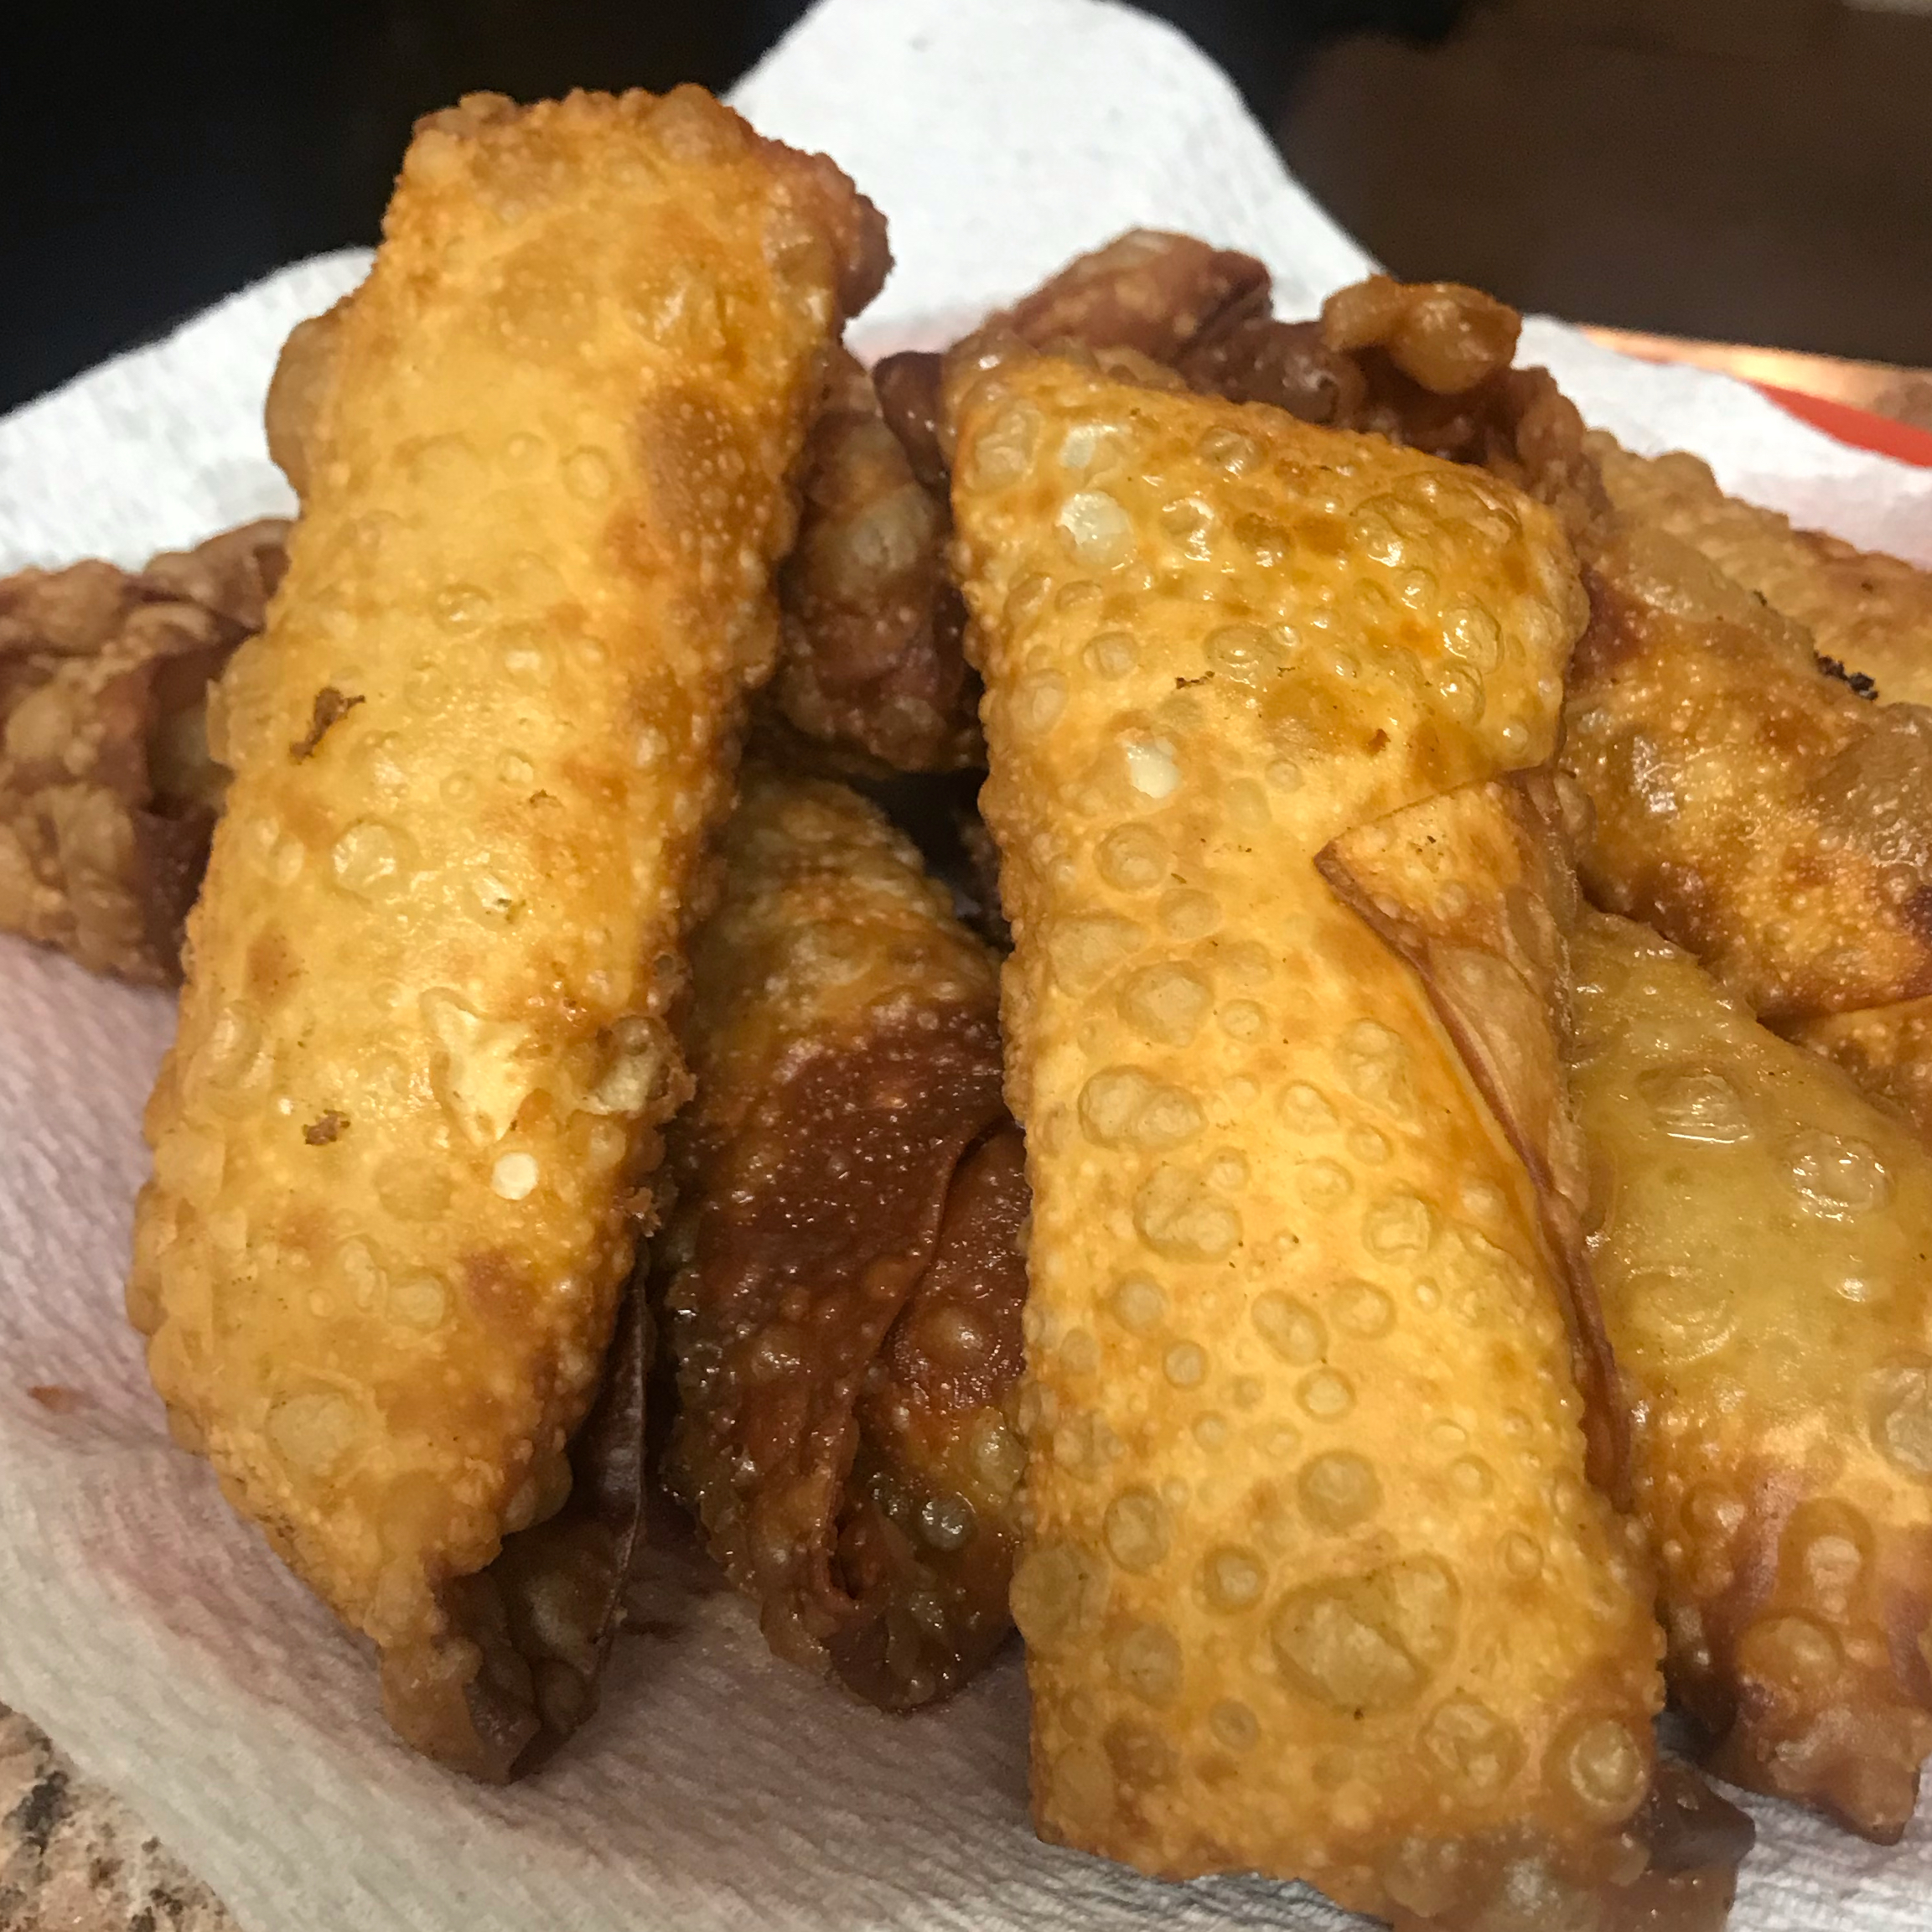 Steak and Cheese Egg Rolls